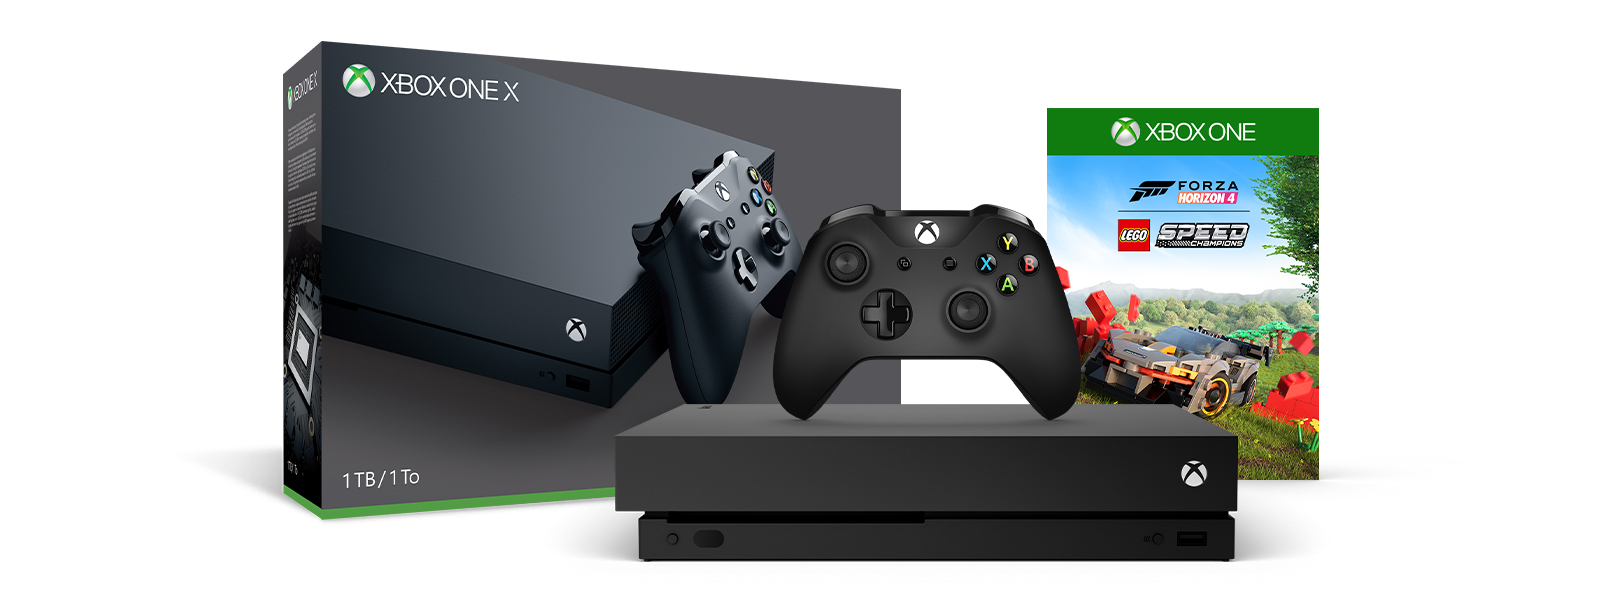 Xbox One X Forza Horizon 4 LEGO® Speed Champions product box and a Xbox One X